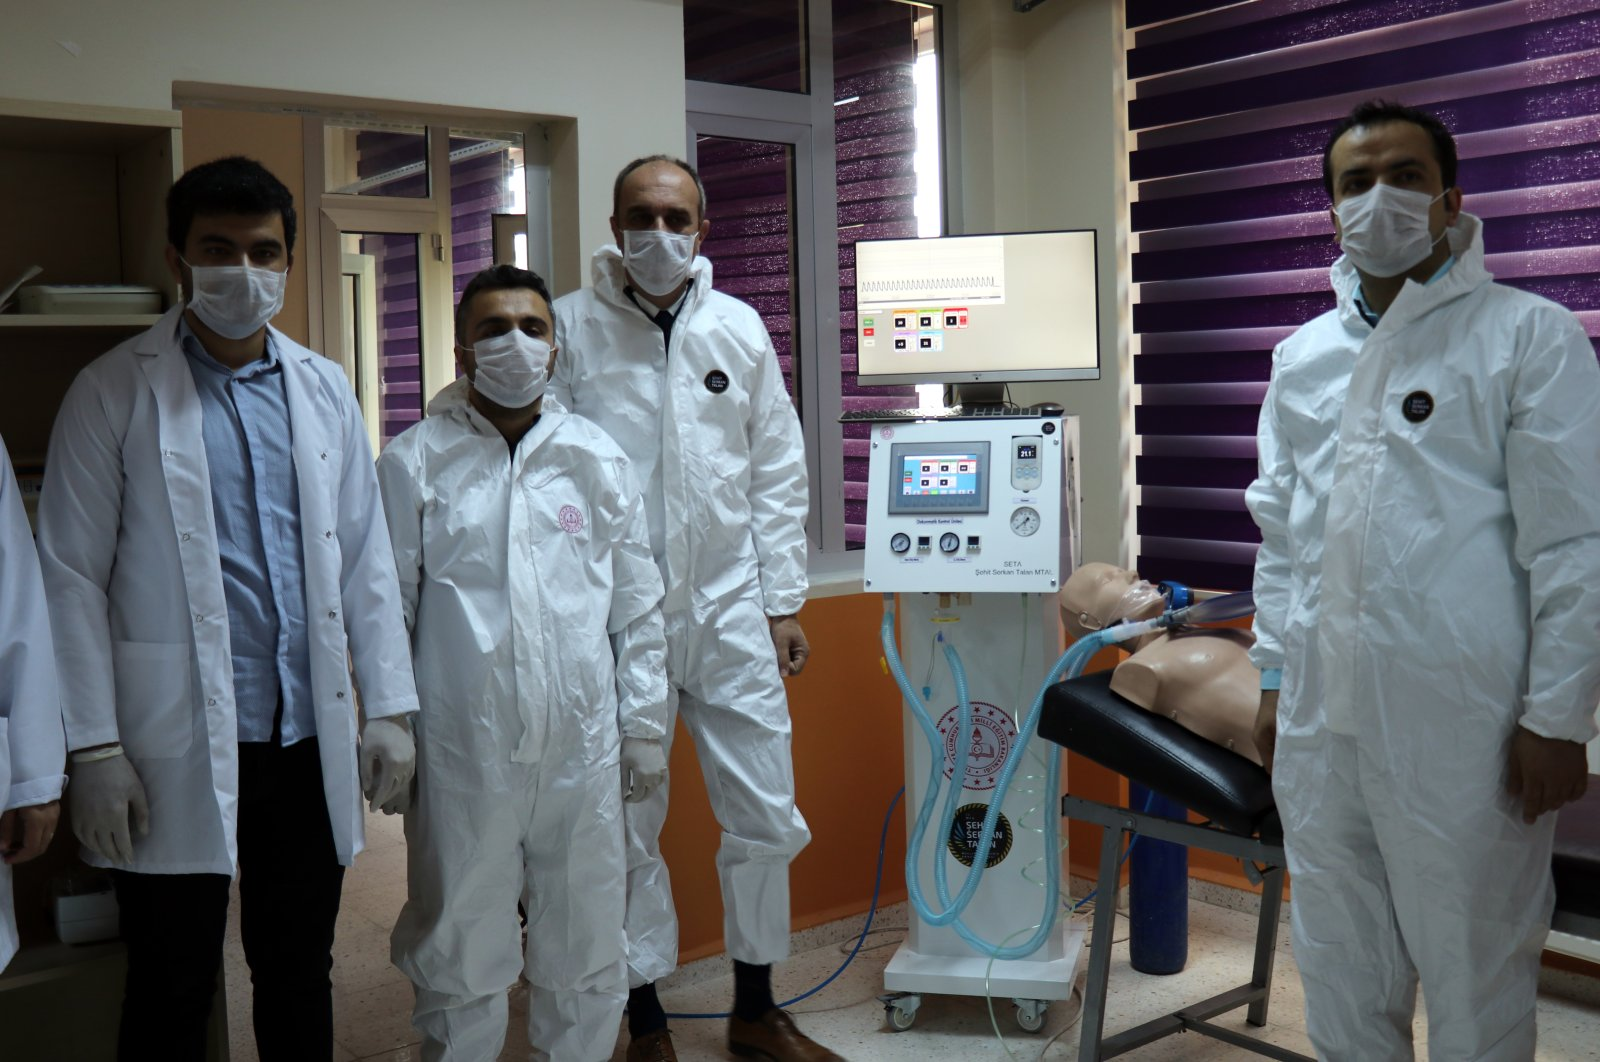 Staff and students of Şehit Serkan Talan Vocational and Technical High School pose with a ventilator device, Hatay, Turkey, April 16, 2020. (AA Photo)